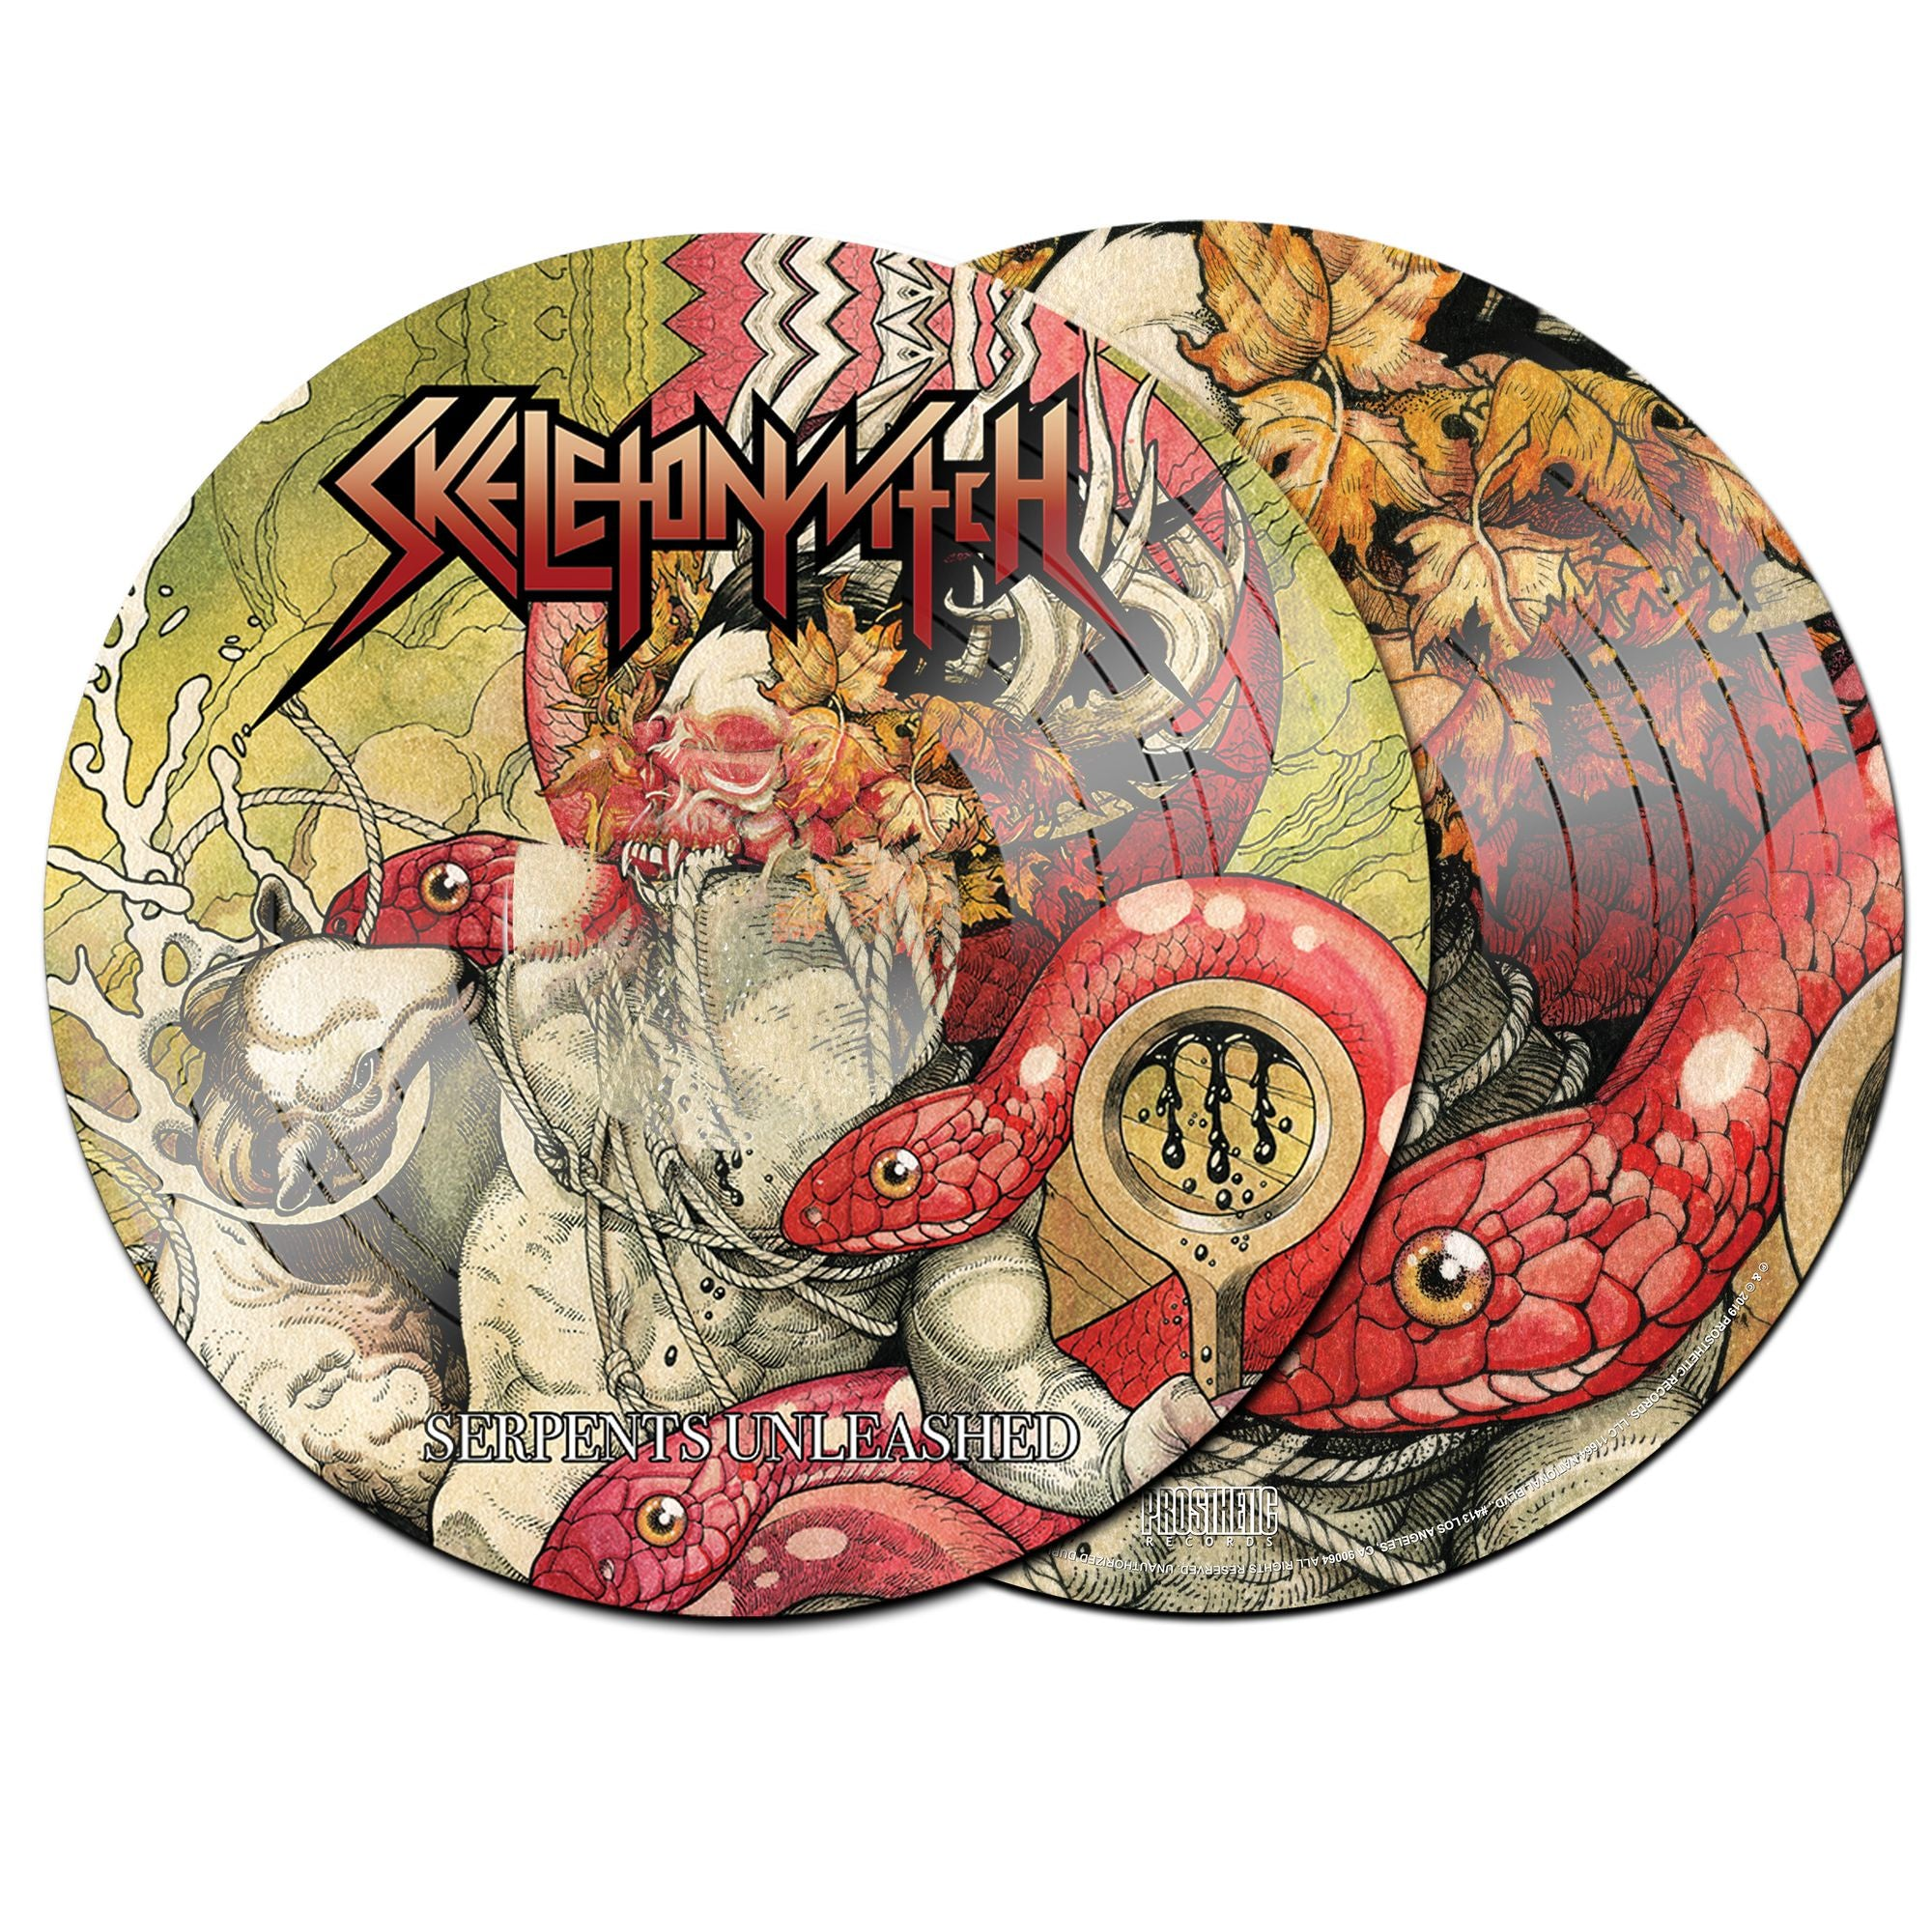 Skeletonwitch - Serpents Unleashed - New Lp 2019 Prosthetic Picture Disc Reissue (Limited to 300 Worldwide!) - Black Metal / Thrash